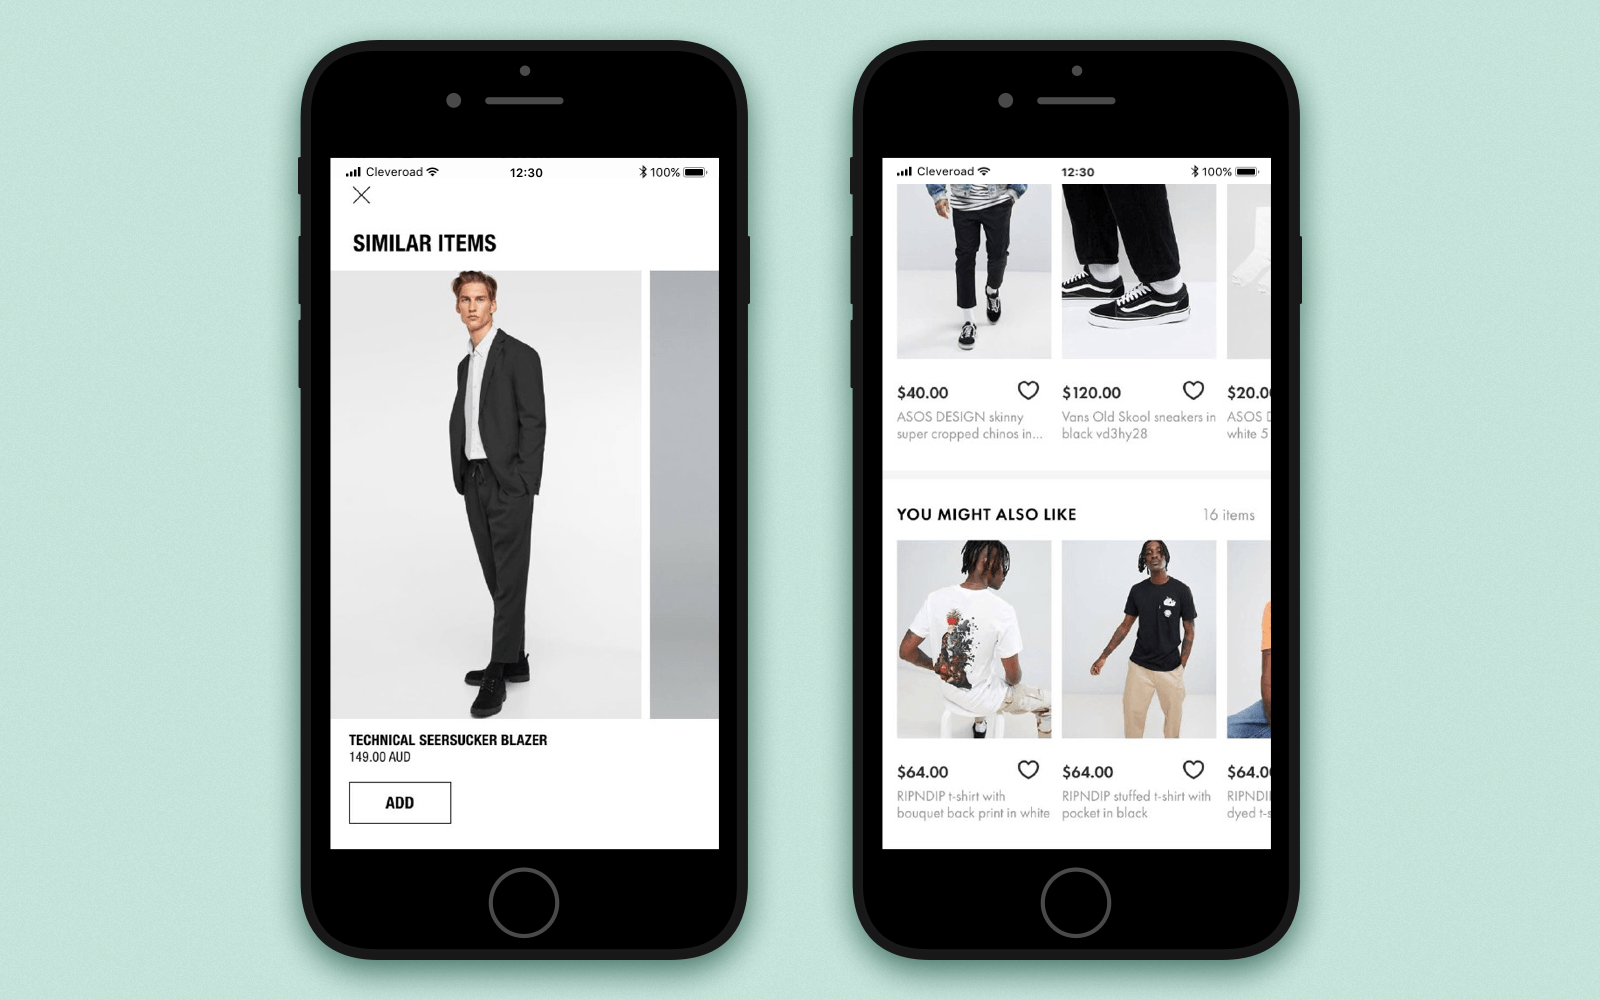 Create online store app that suggests users similar items or items they may like